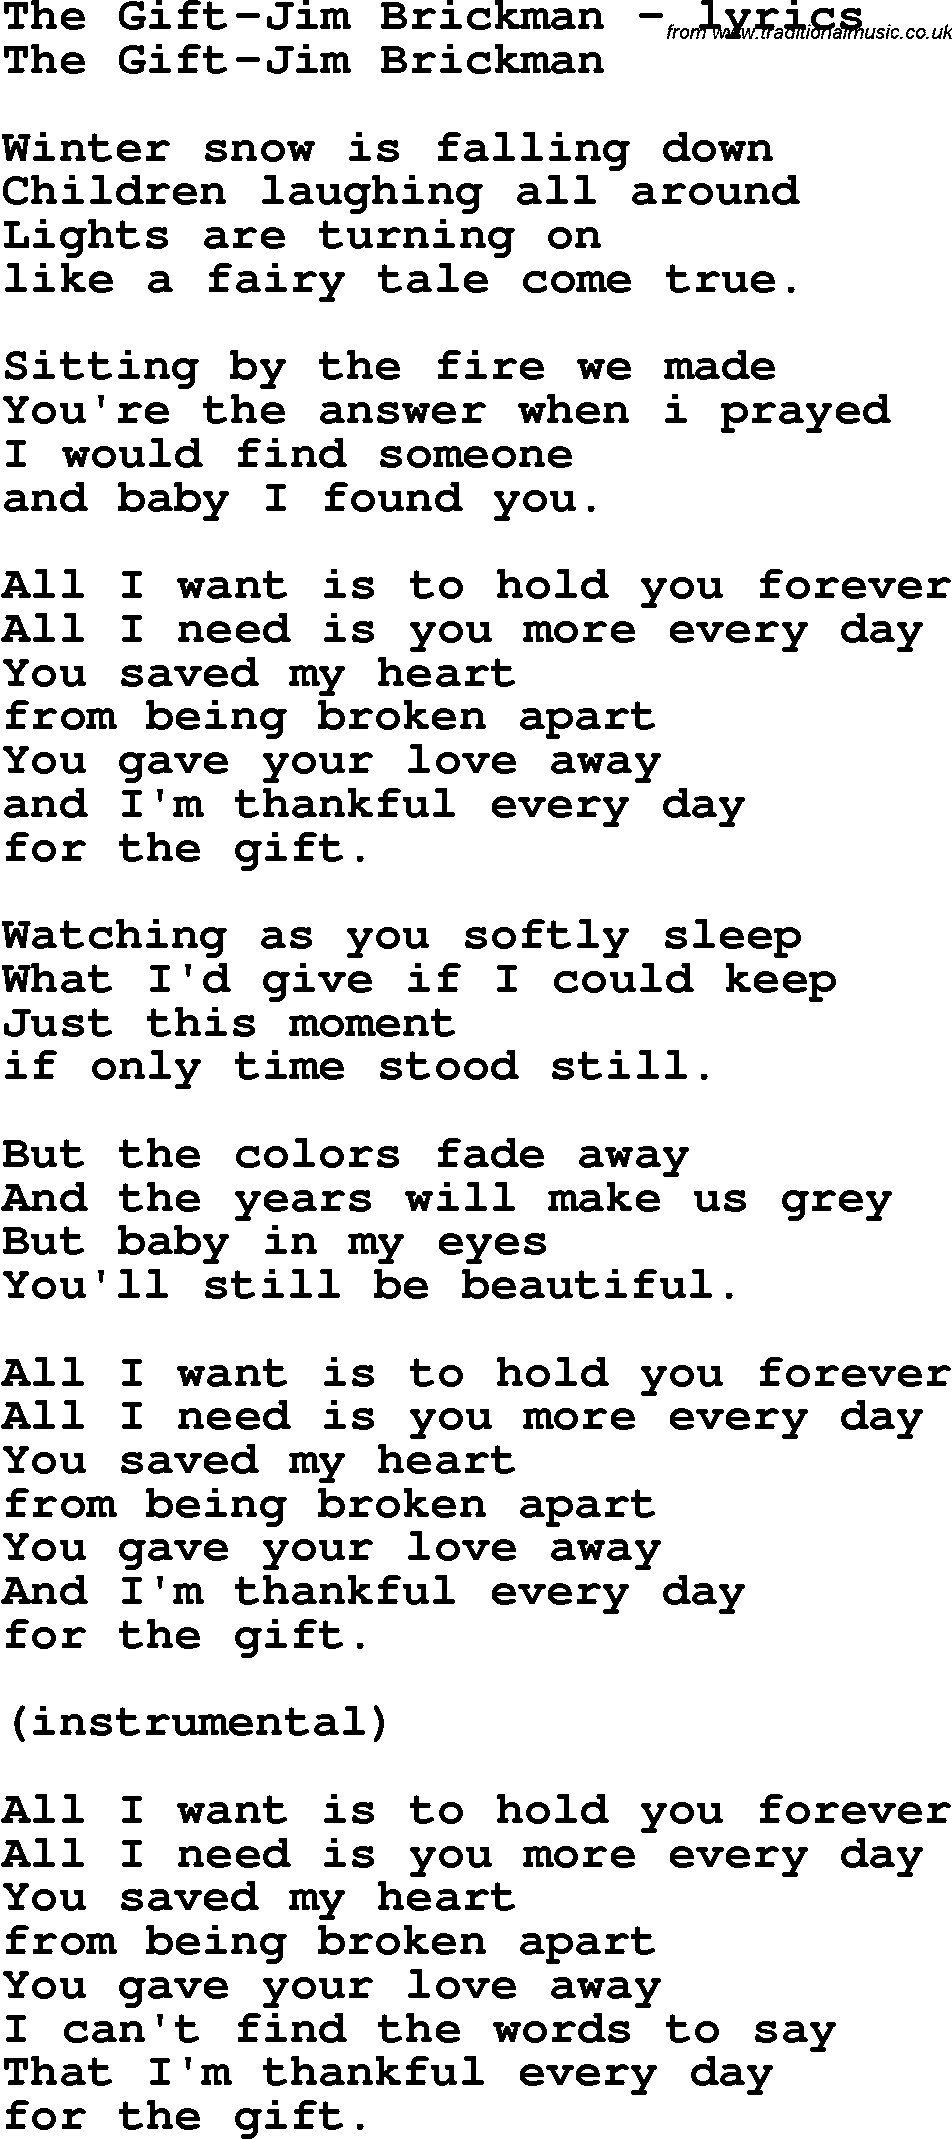 Love Song Lyrics for:The Gift-Jim Brickman